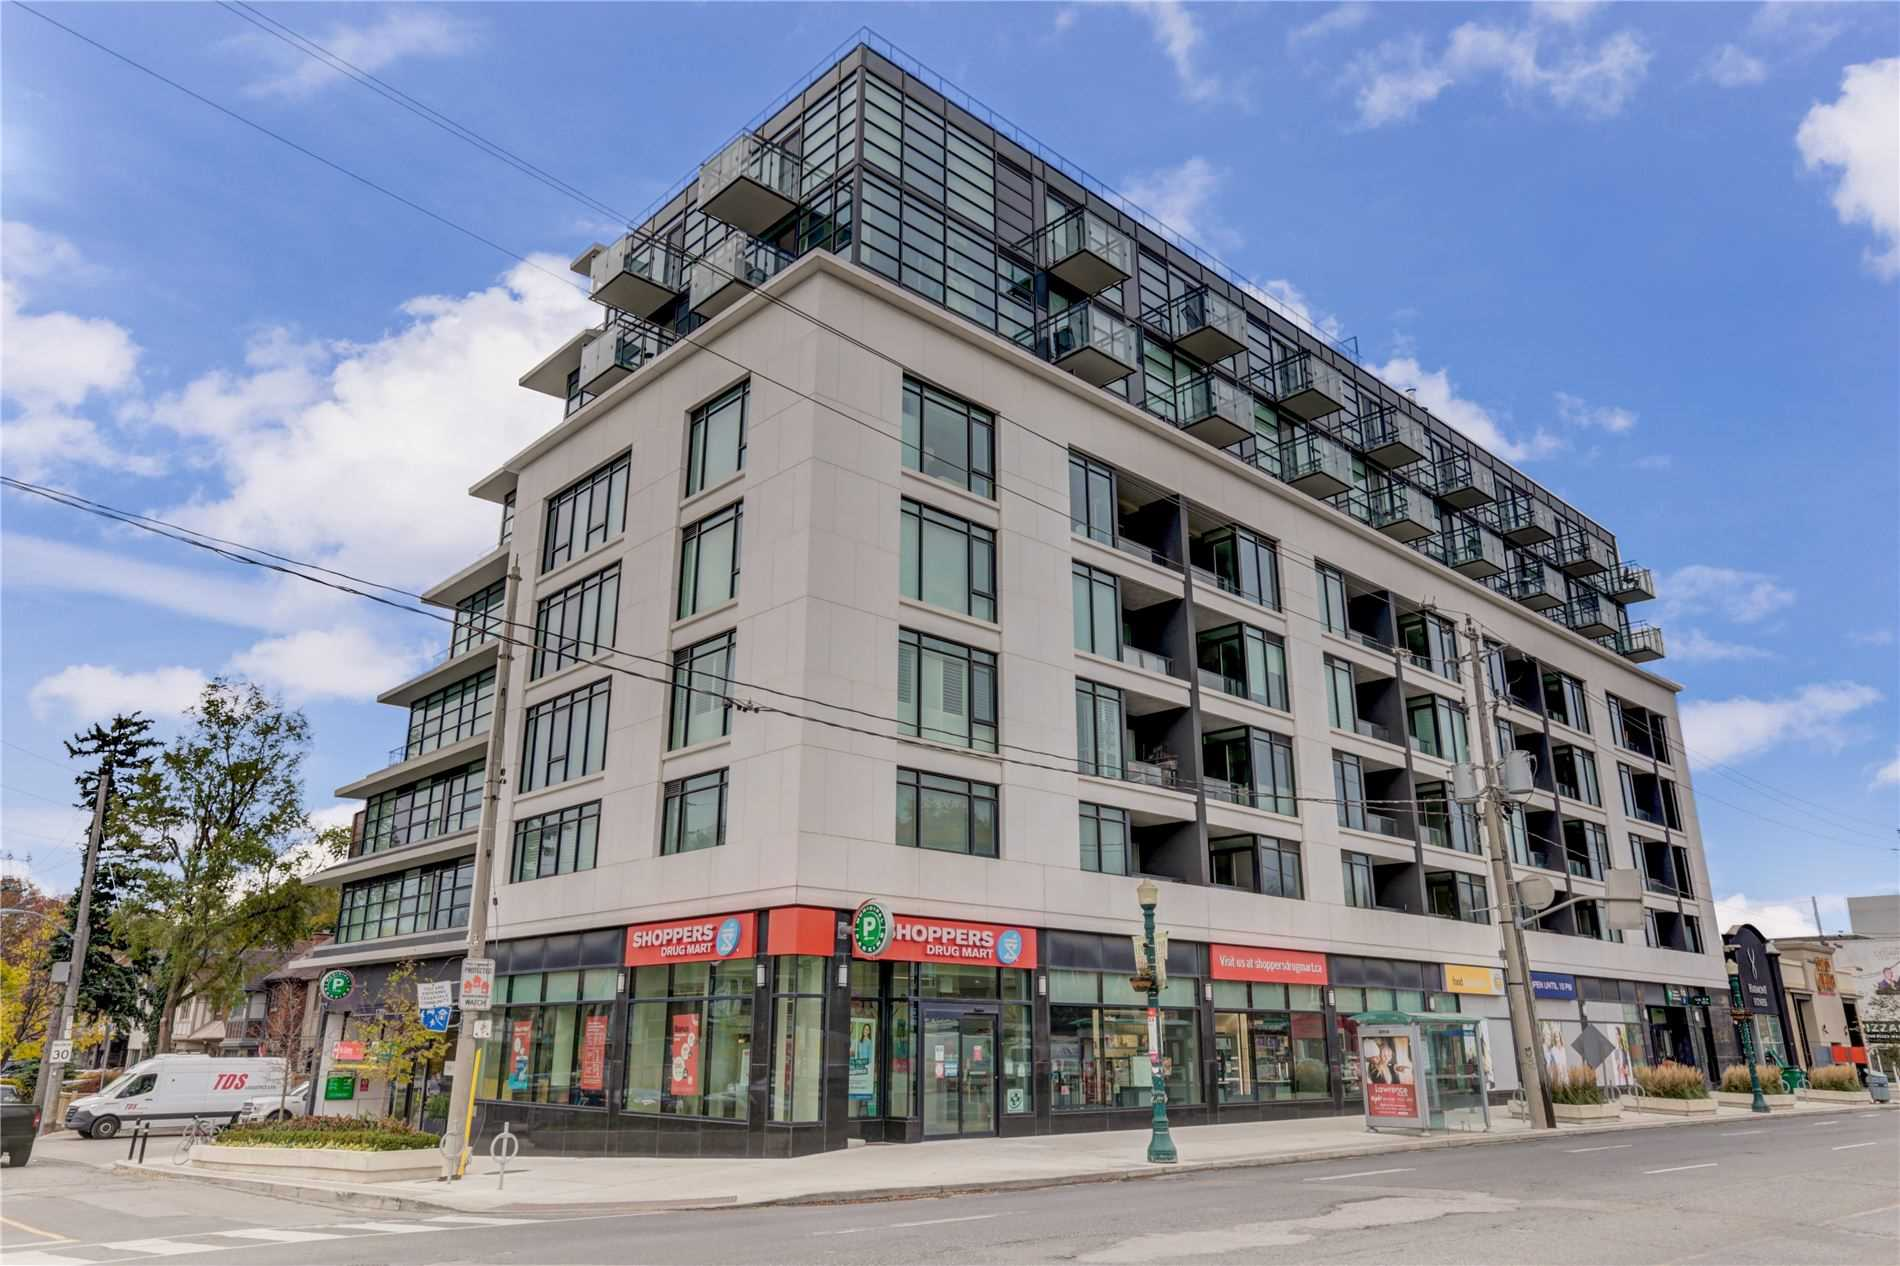 170 Chiltern Hill Rd, Toronto, Ontario M6C2C3, 1 Bedroom Bedrooms, 4 Rooms Rooms,1 BathroomBathrooms,Condo Apt,For Sale,Chiltern Hill,C4979463